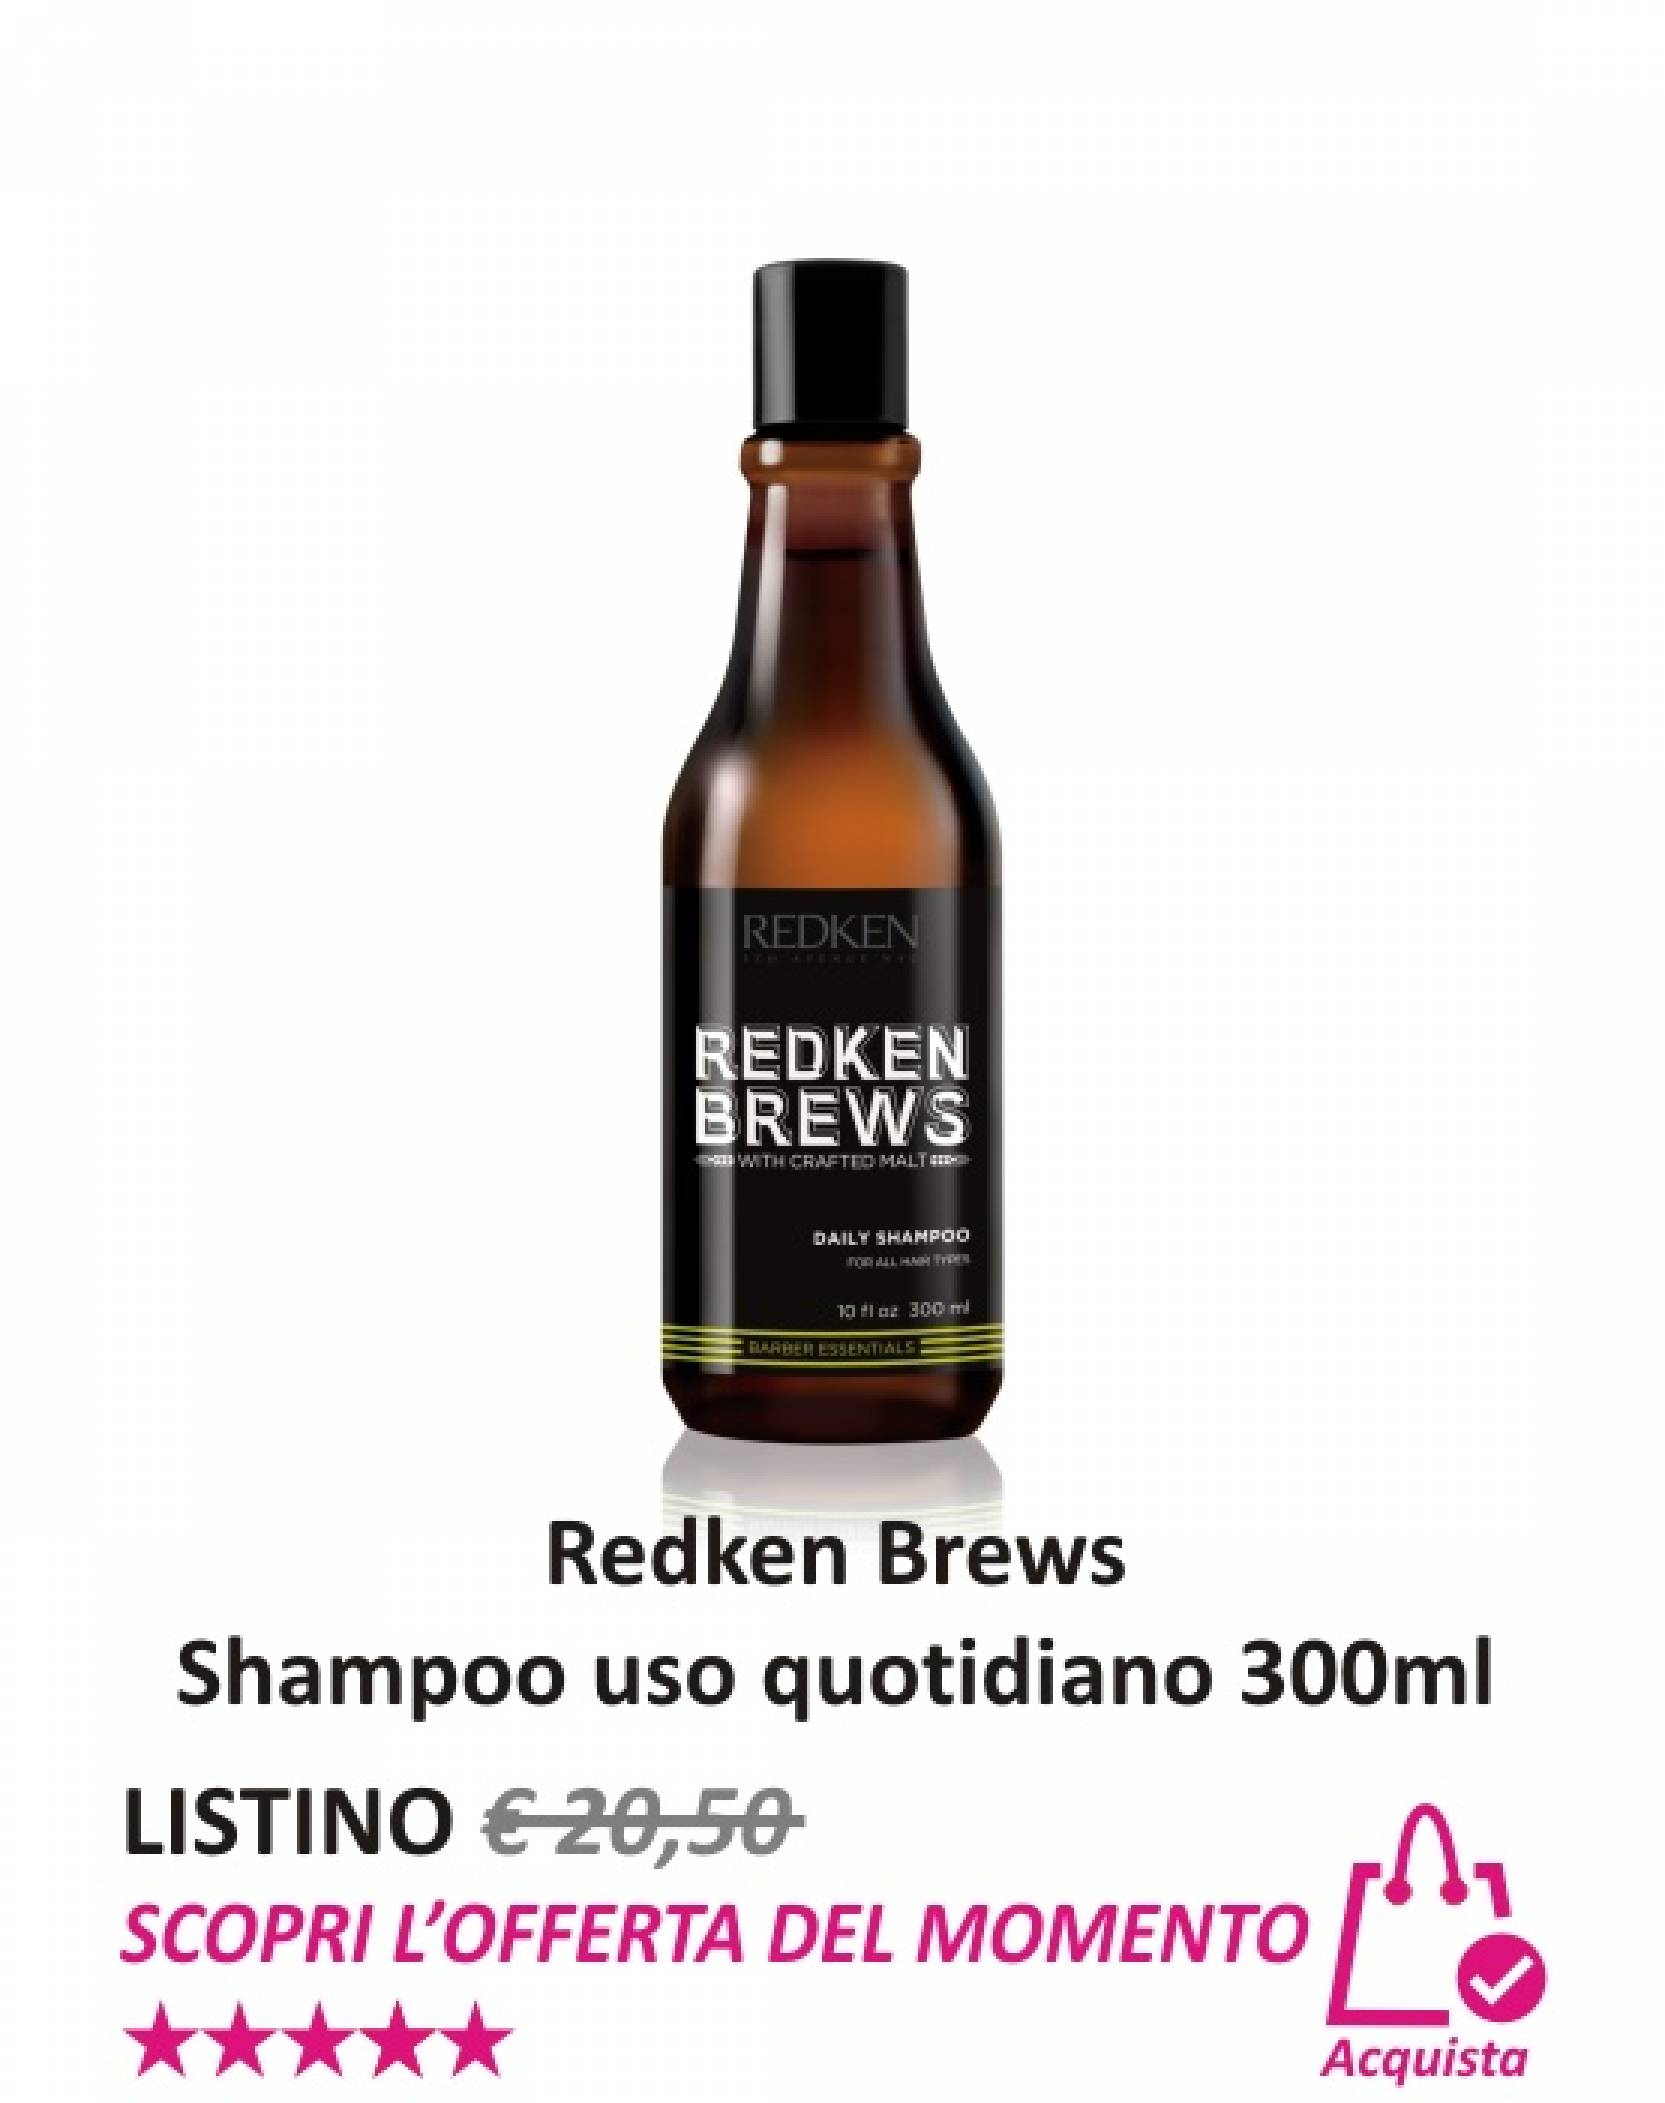 Redken Brews Shampoo uso quotidiano 300 ml